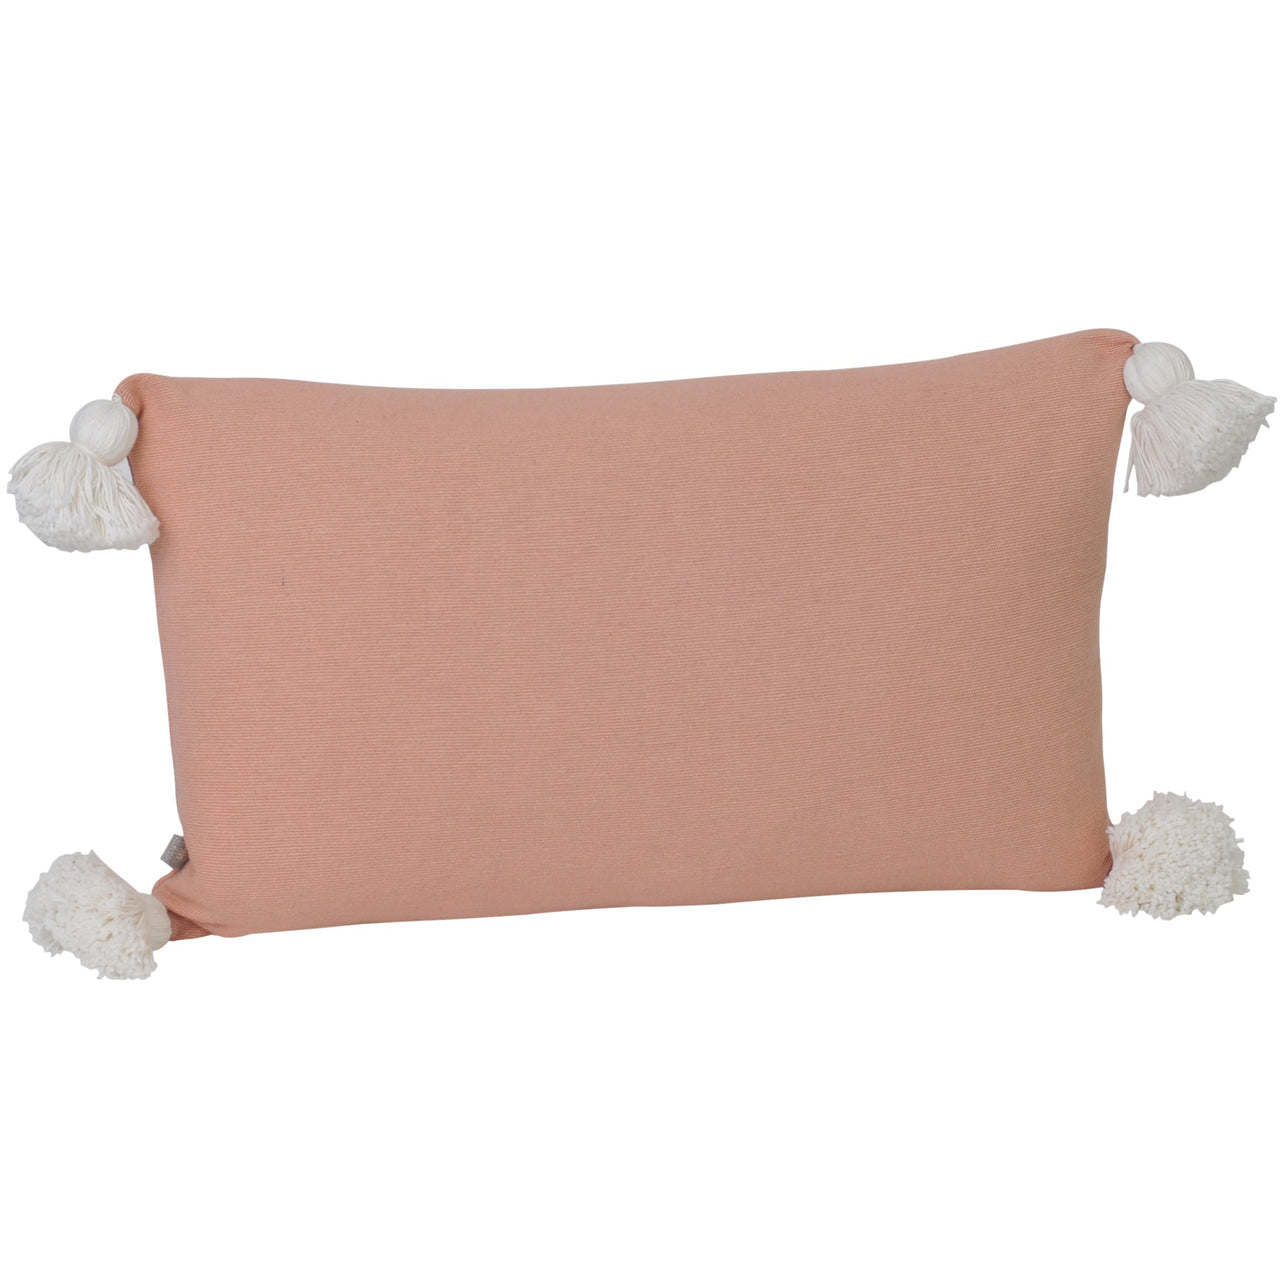 Soho Tassel Lumbar Cushion- Peach